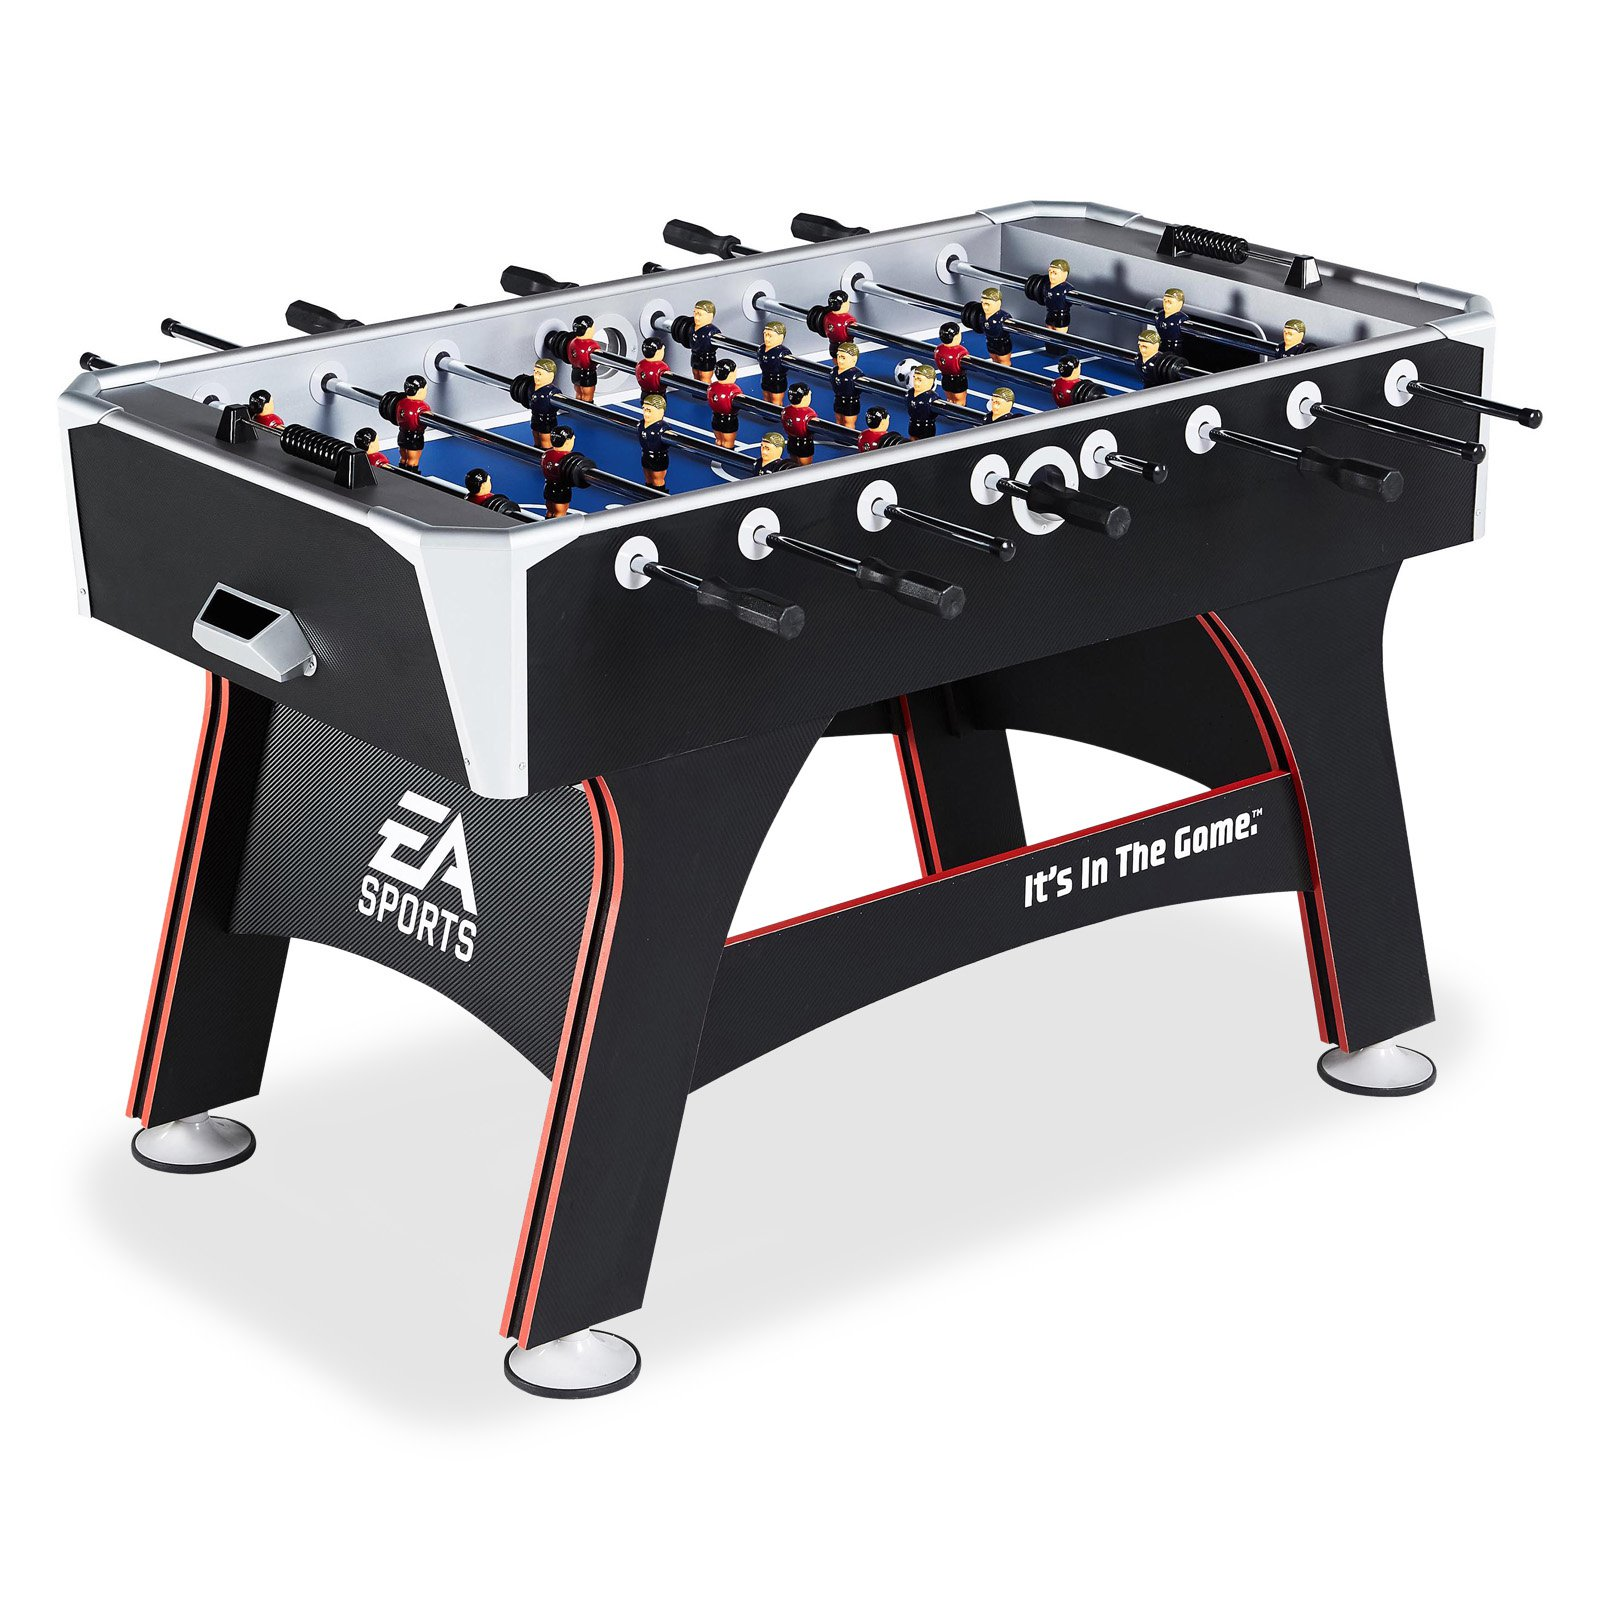 "EA SPORTS 56"" Foosball Table by Medal Sports"